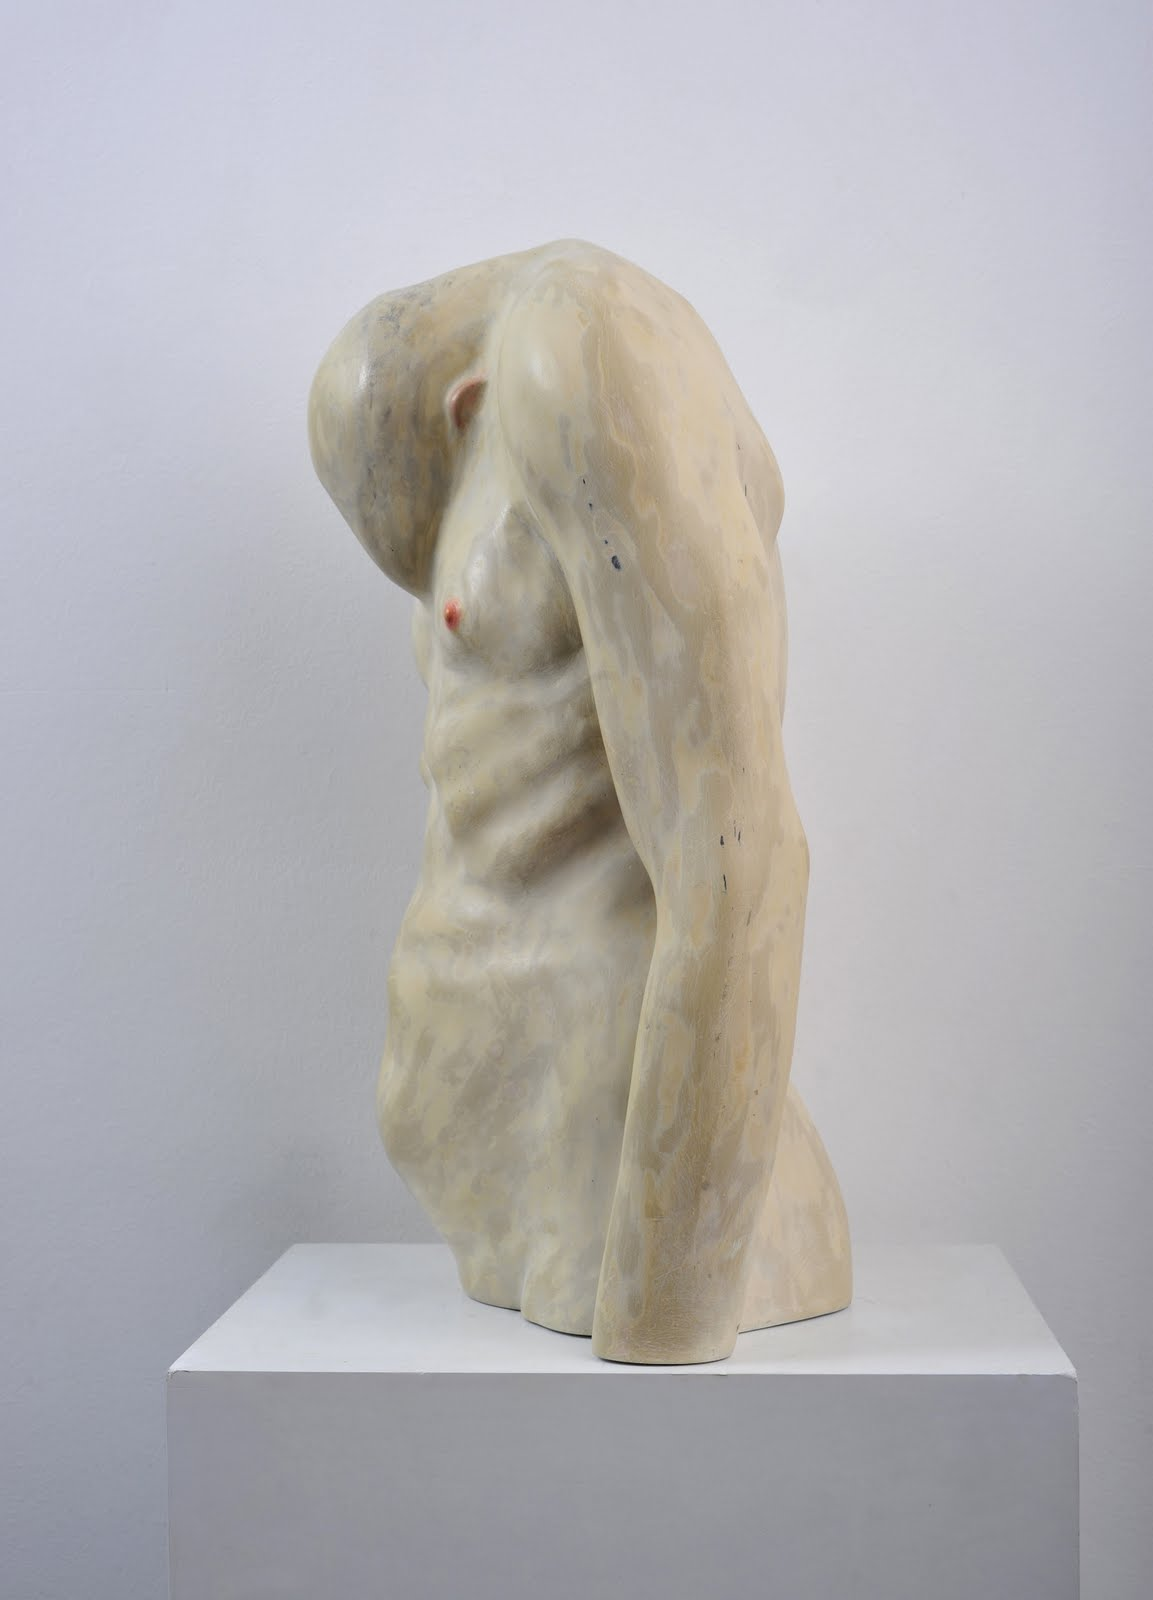 Bogdan Rata, Shame, polyester, synthetic resin, fibre, paint, 2009, 52x36x12 cm